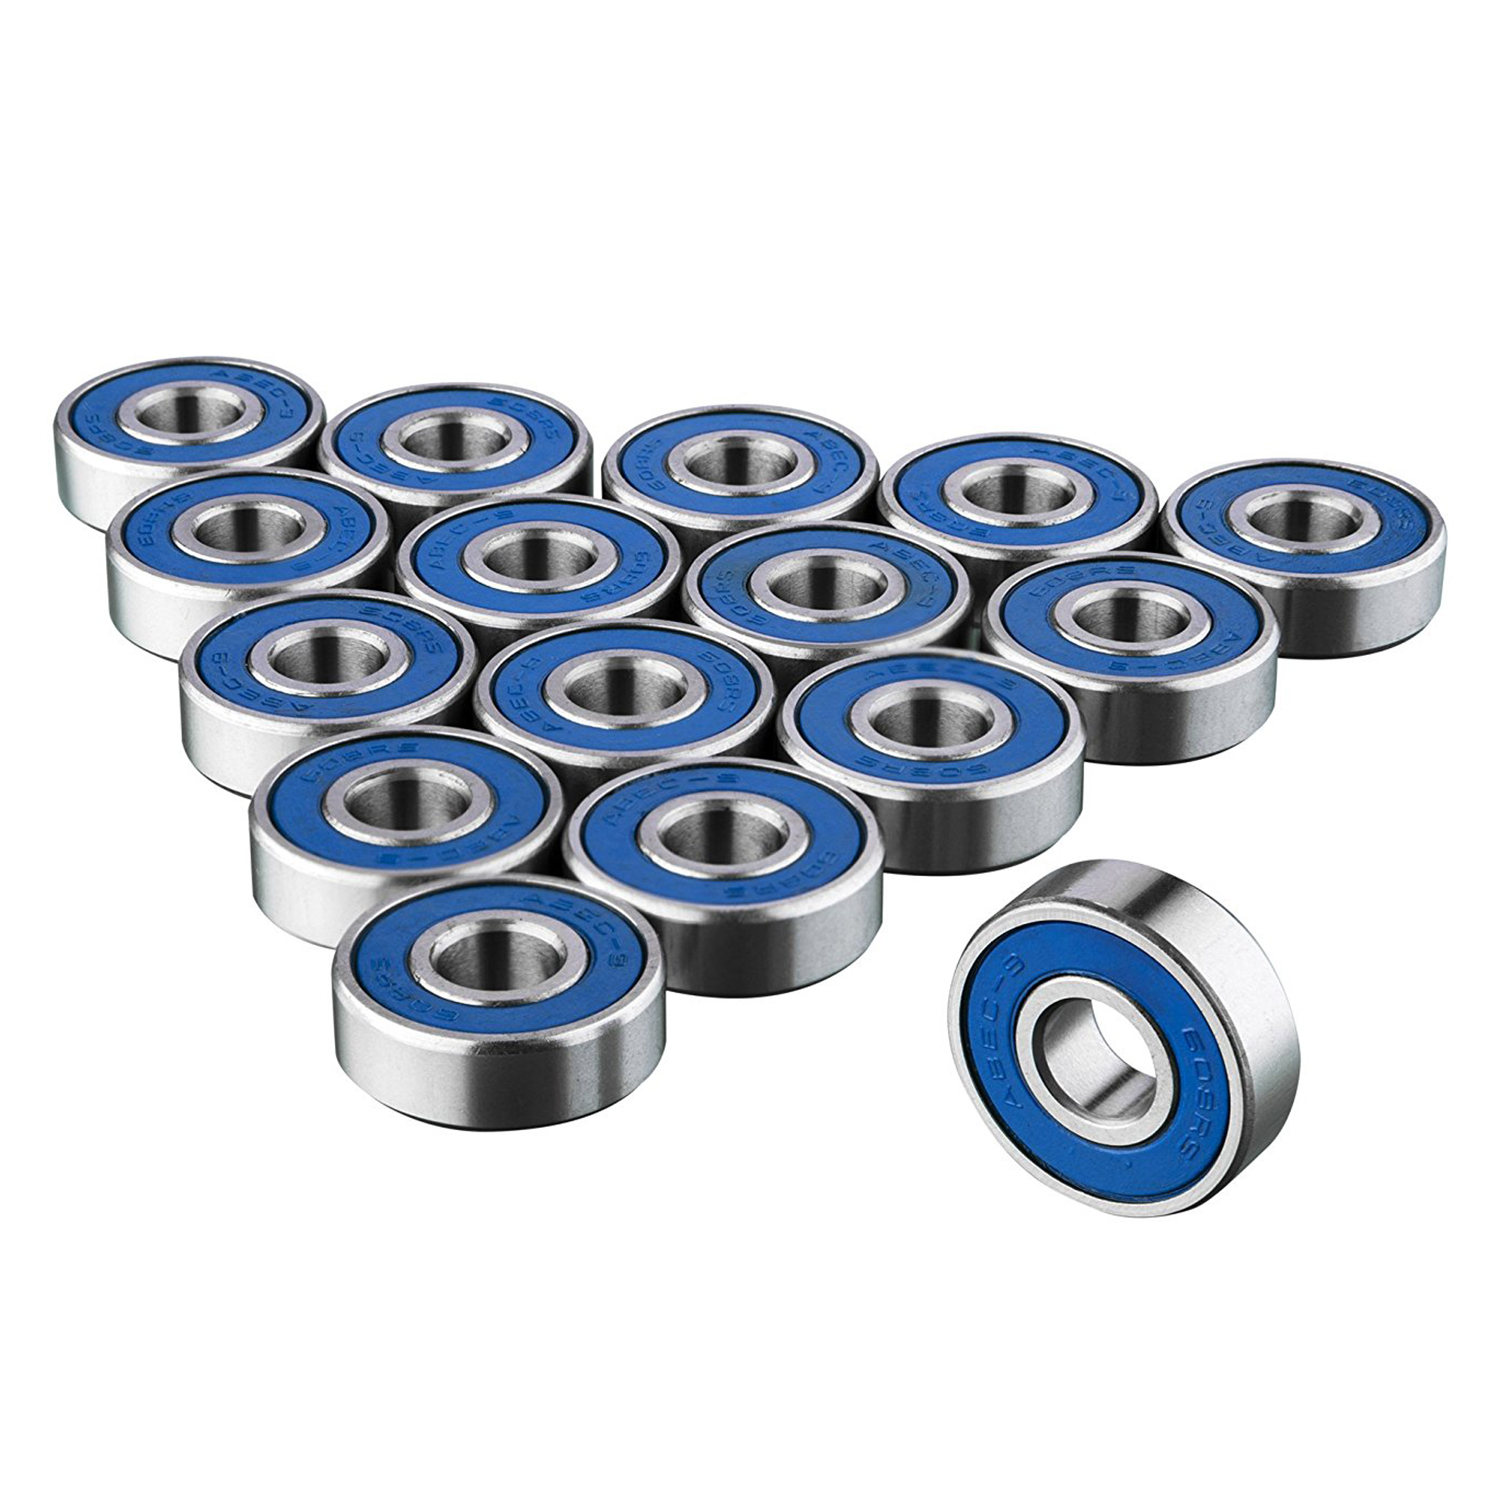 16 X 608RS Skateboard Bearings - Frictionless ABEC 9 Roller Bearing For Skate Boards Dropshipping